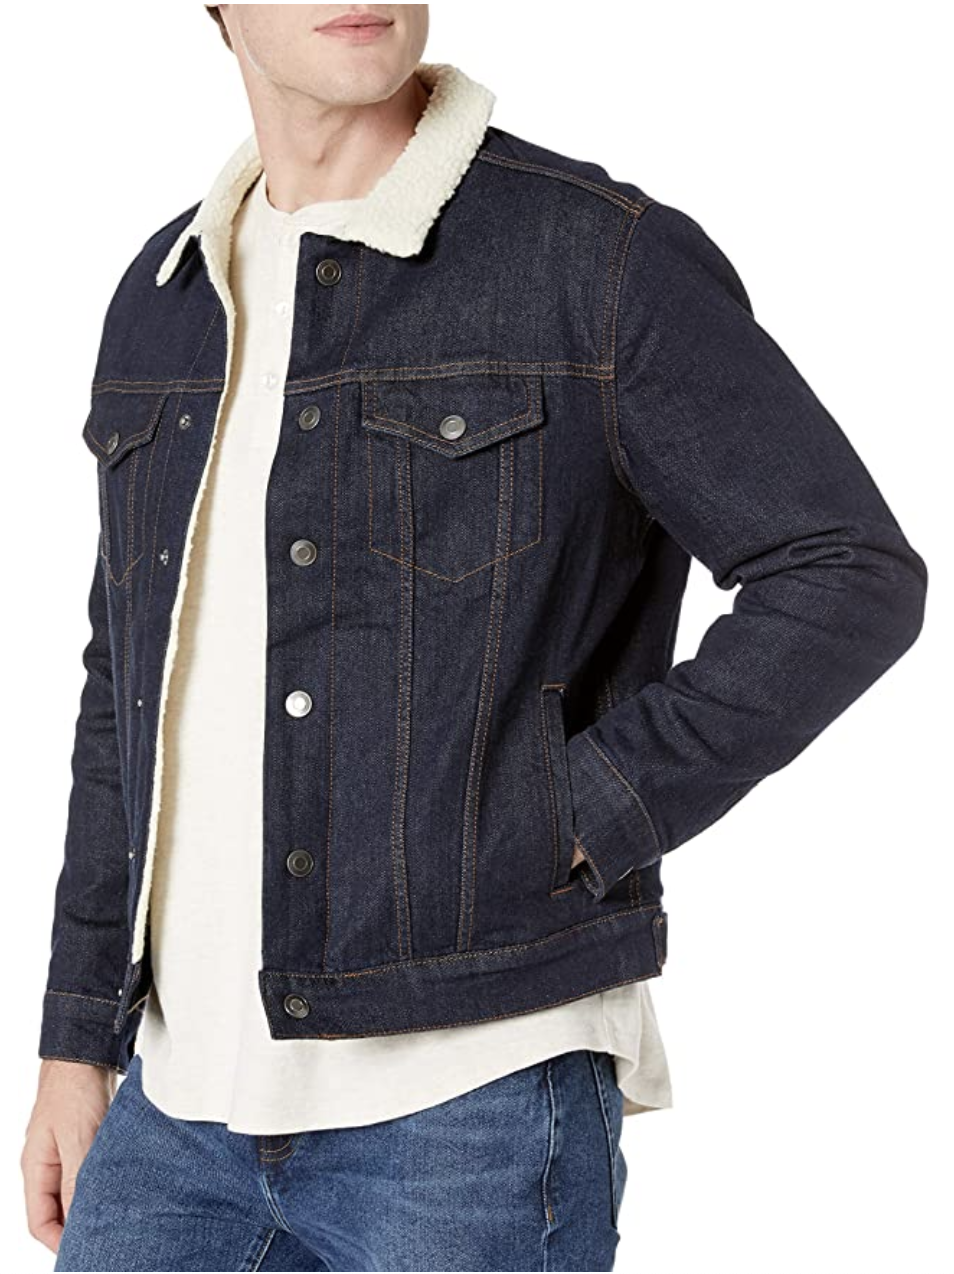 model in dark denim button up sherpa lined jacket with collar